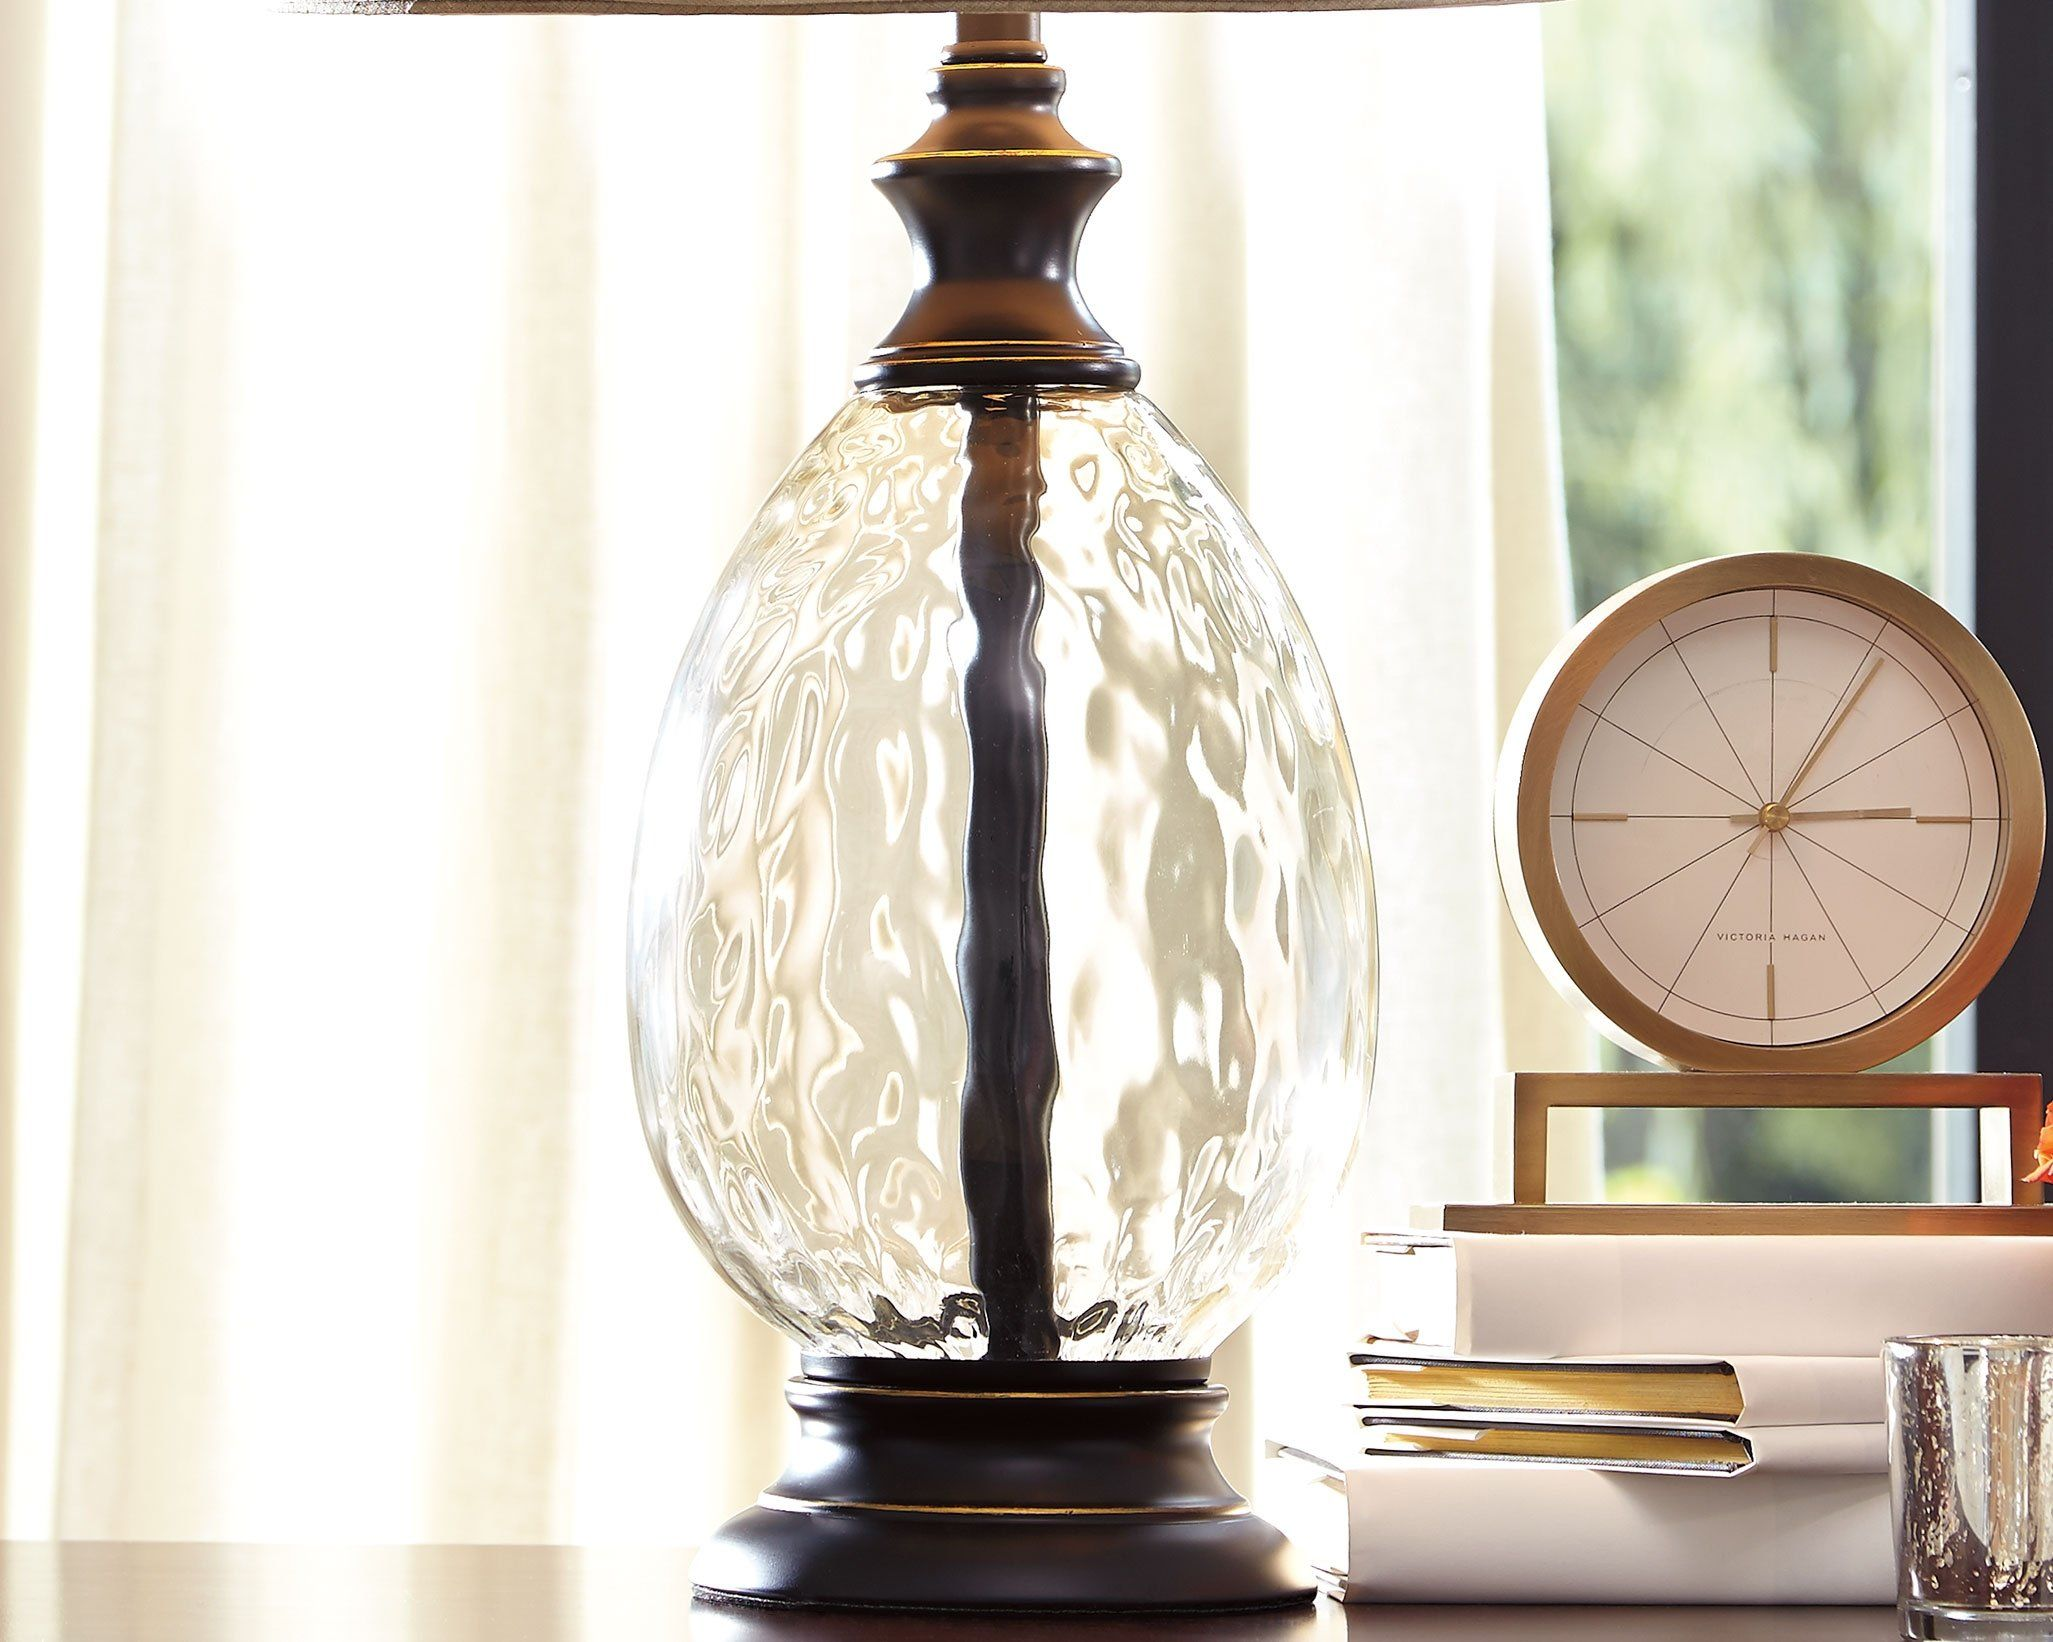 Ashley Furniture Signature Design Olivia Glass And Metal Table Lamp With Fabric Shade Set Of 2 Bronze Finish Click With Images Lamp Metal Table Lamps Fabric Shades